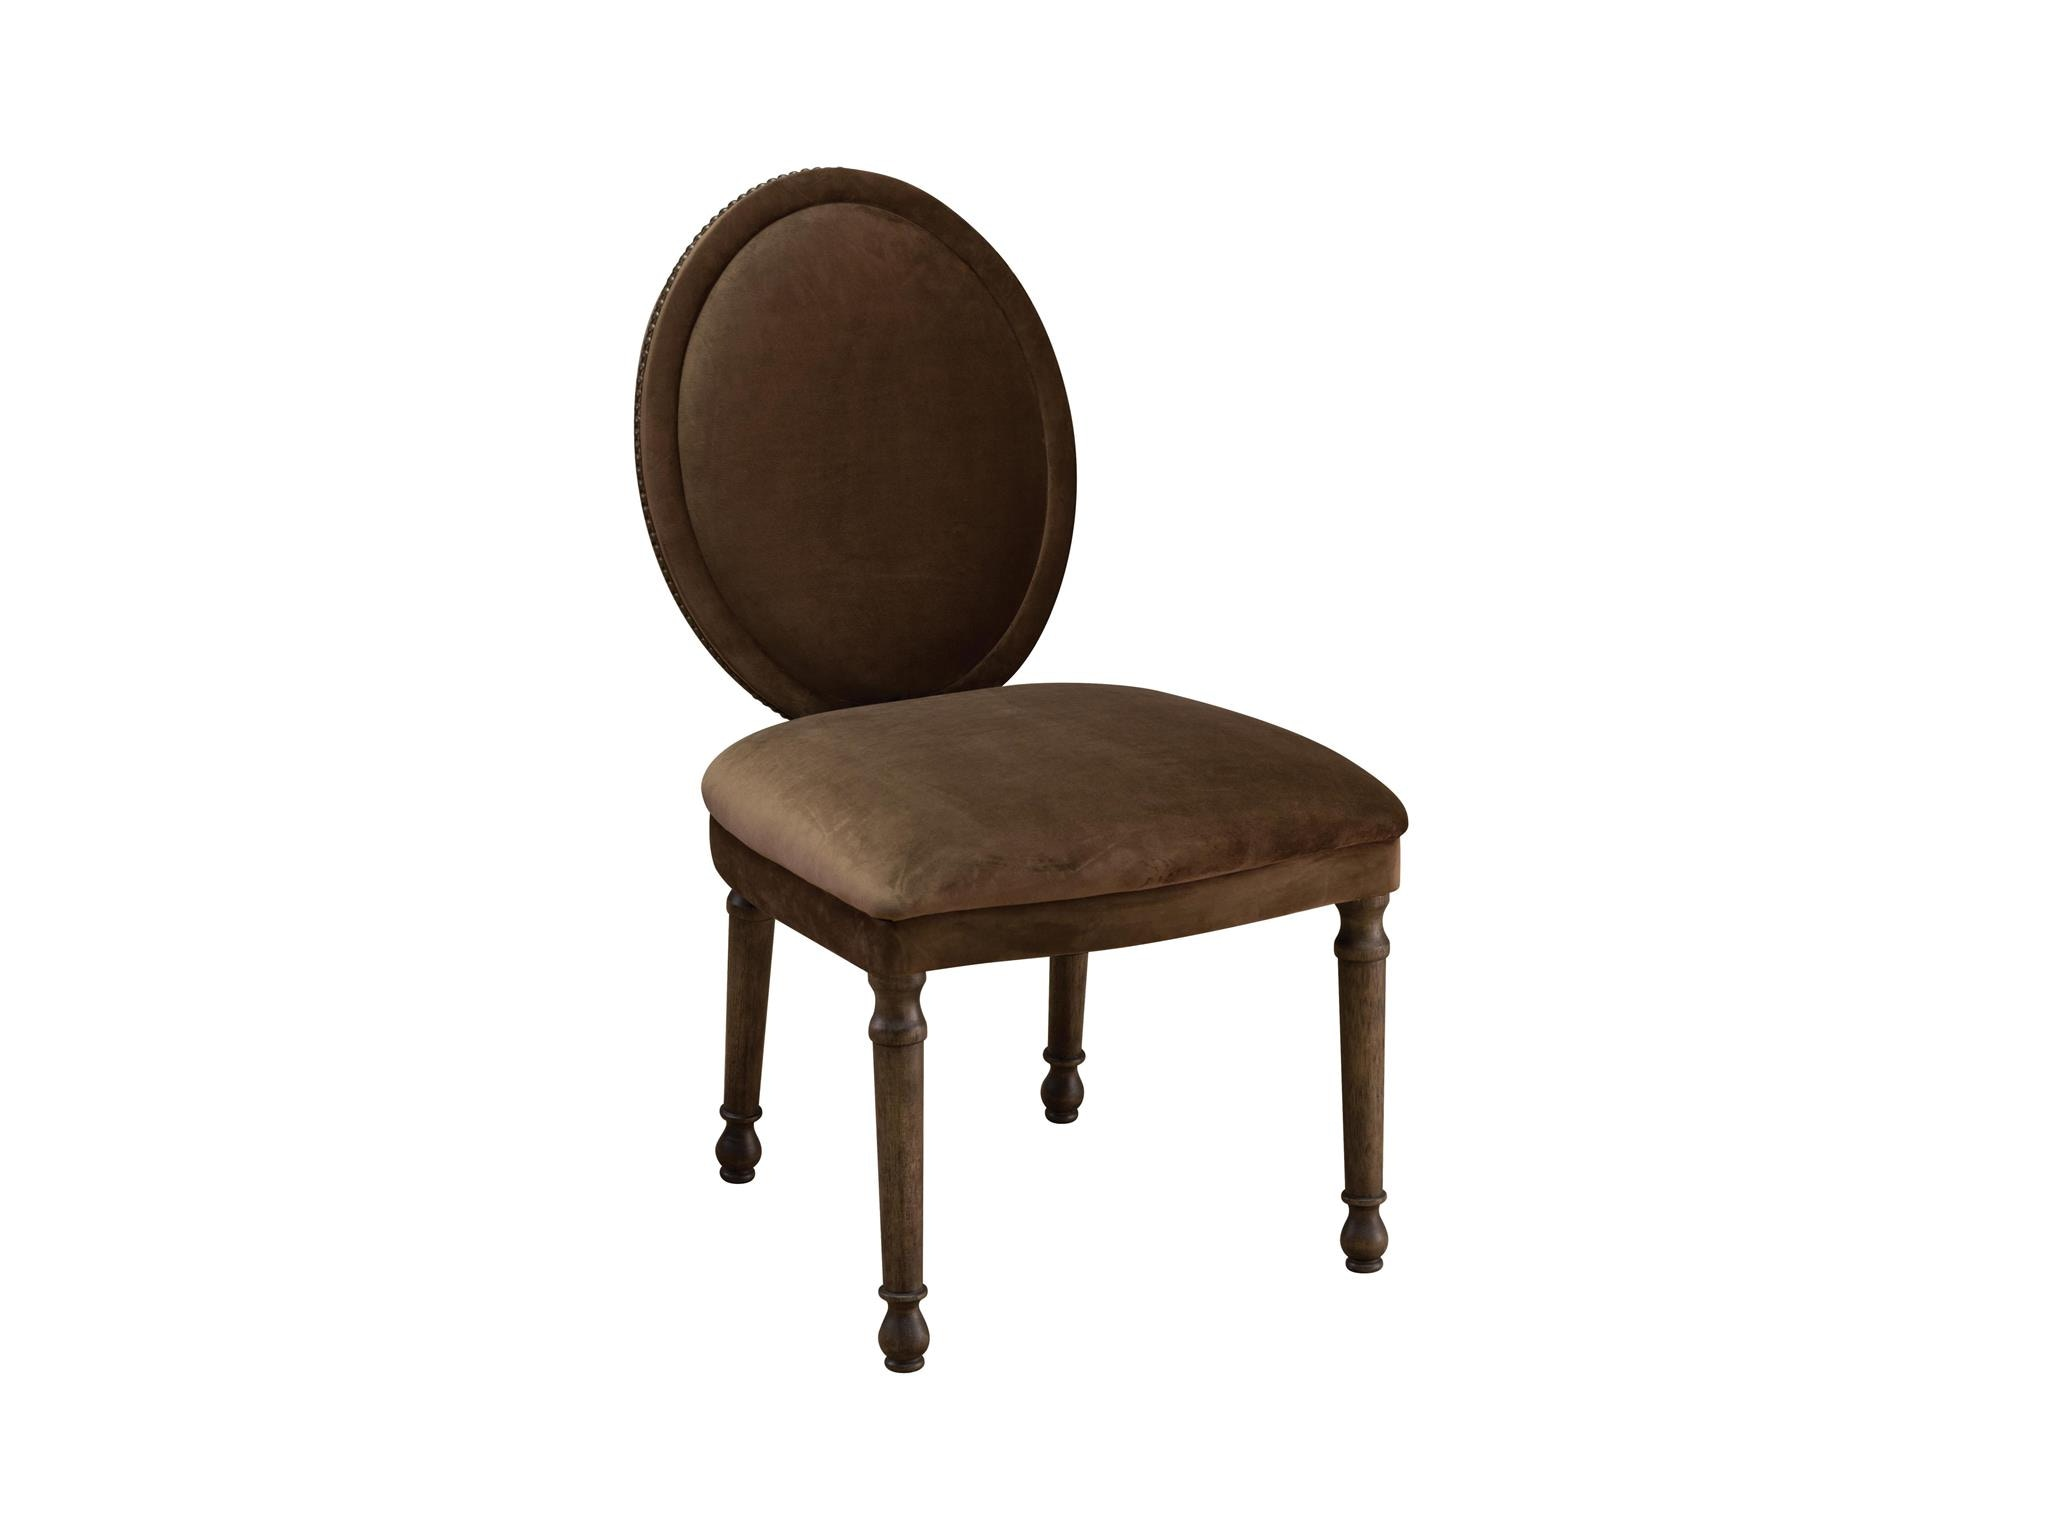 Fine Furniture Design Living Room Chair 0811 03 Gibson